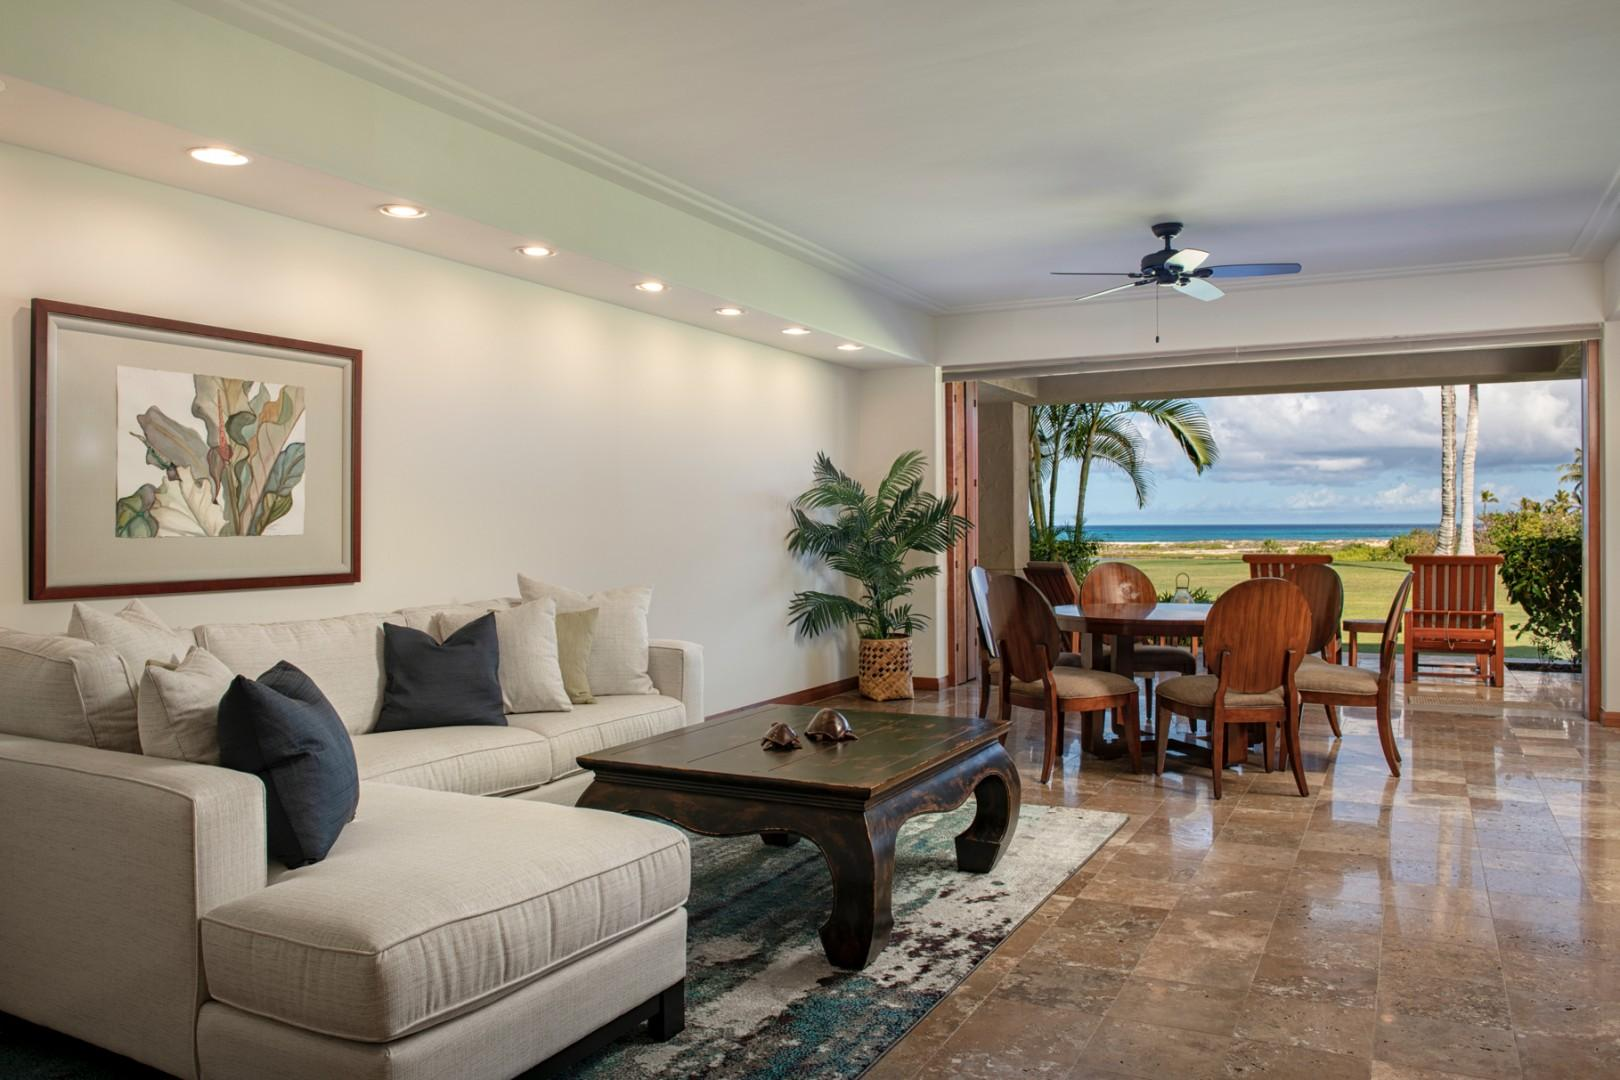 Elegant living area with sliding glass pocket doors to lanai seating and ocean views.